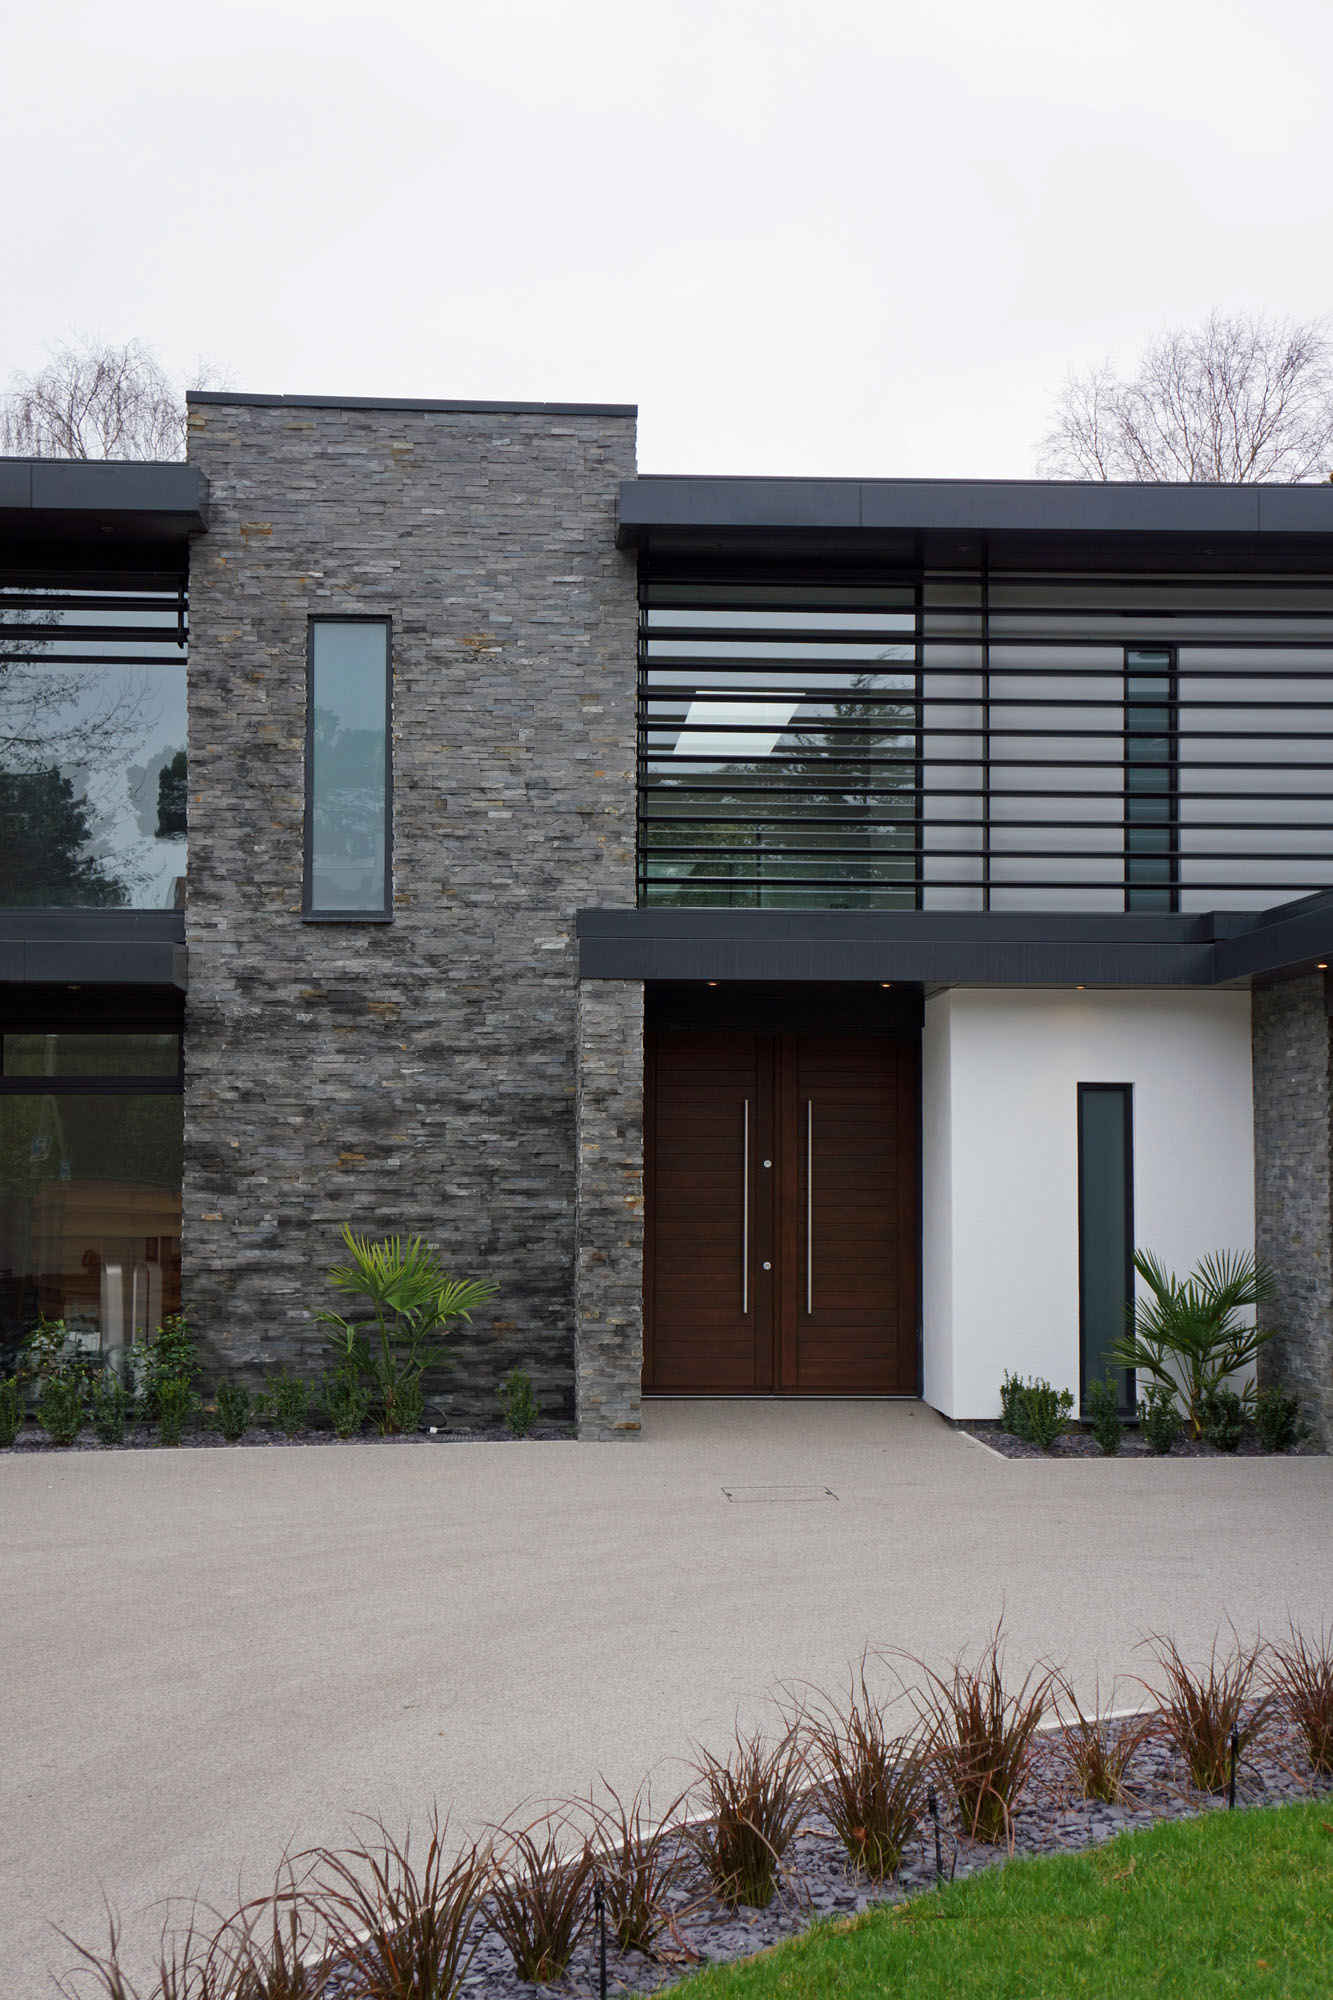 Nairn Road Residence by David James Architects